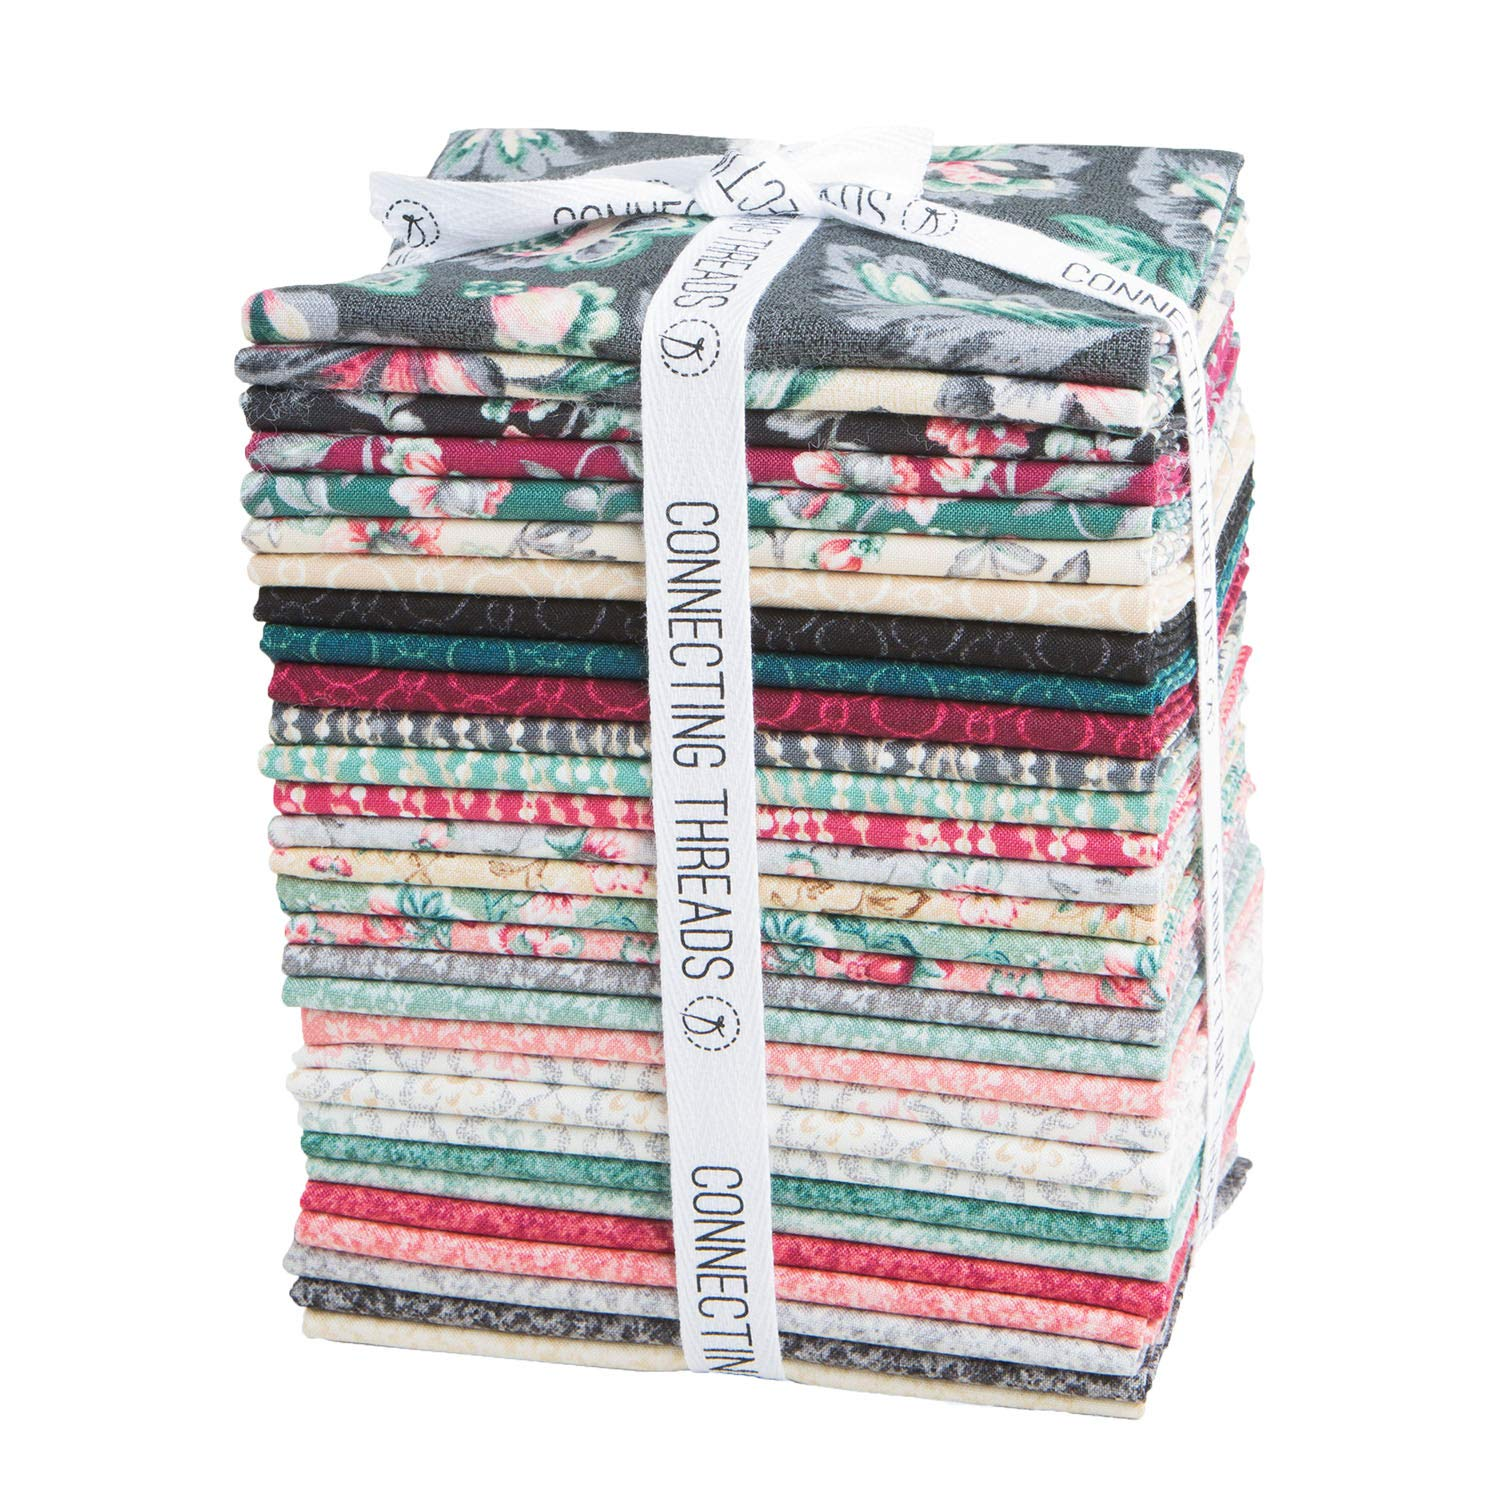 Connecting Threads Print Collection Precut Quilting Fabric Bundle (Jardin de Nicolette - Fat Quarters) by Connecting Threads (Image #1)